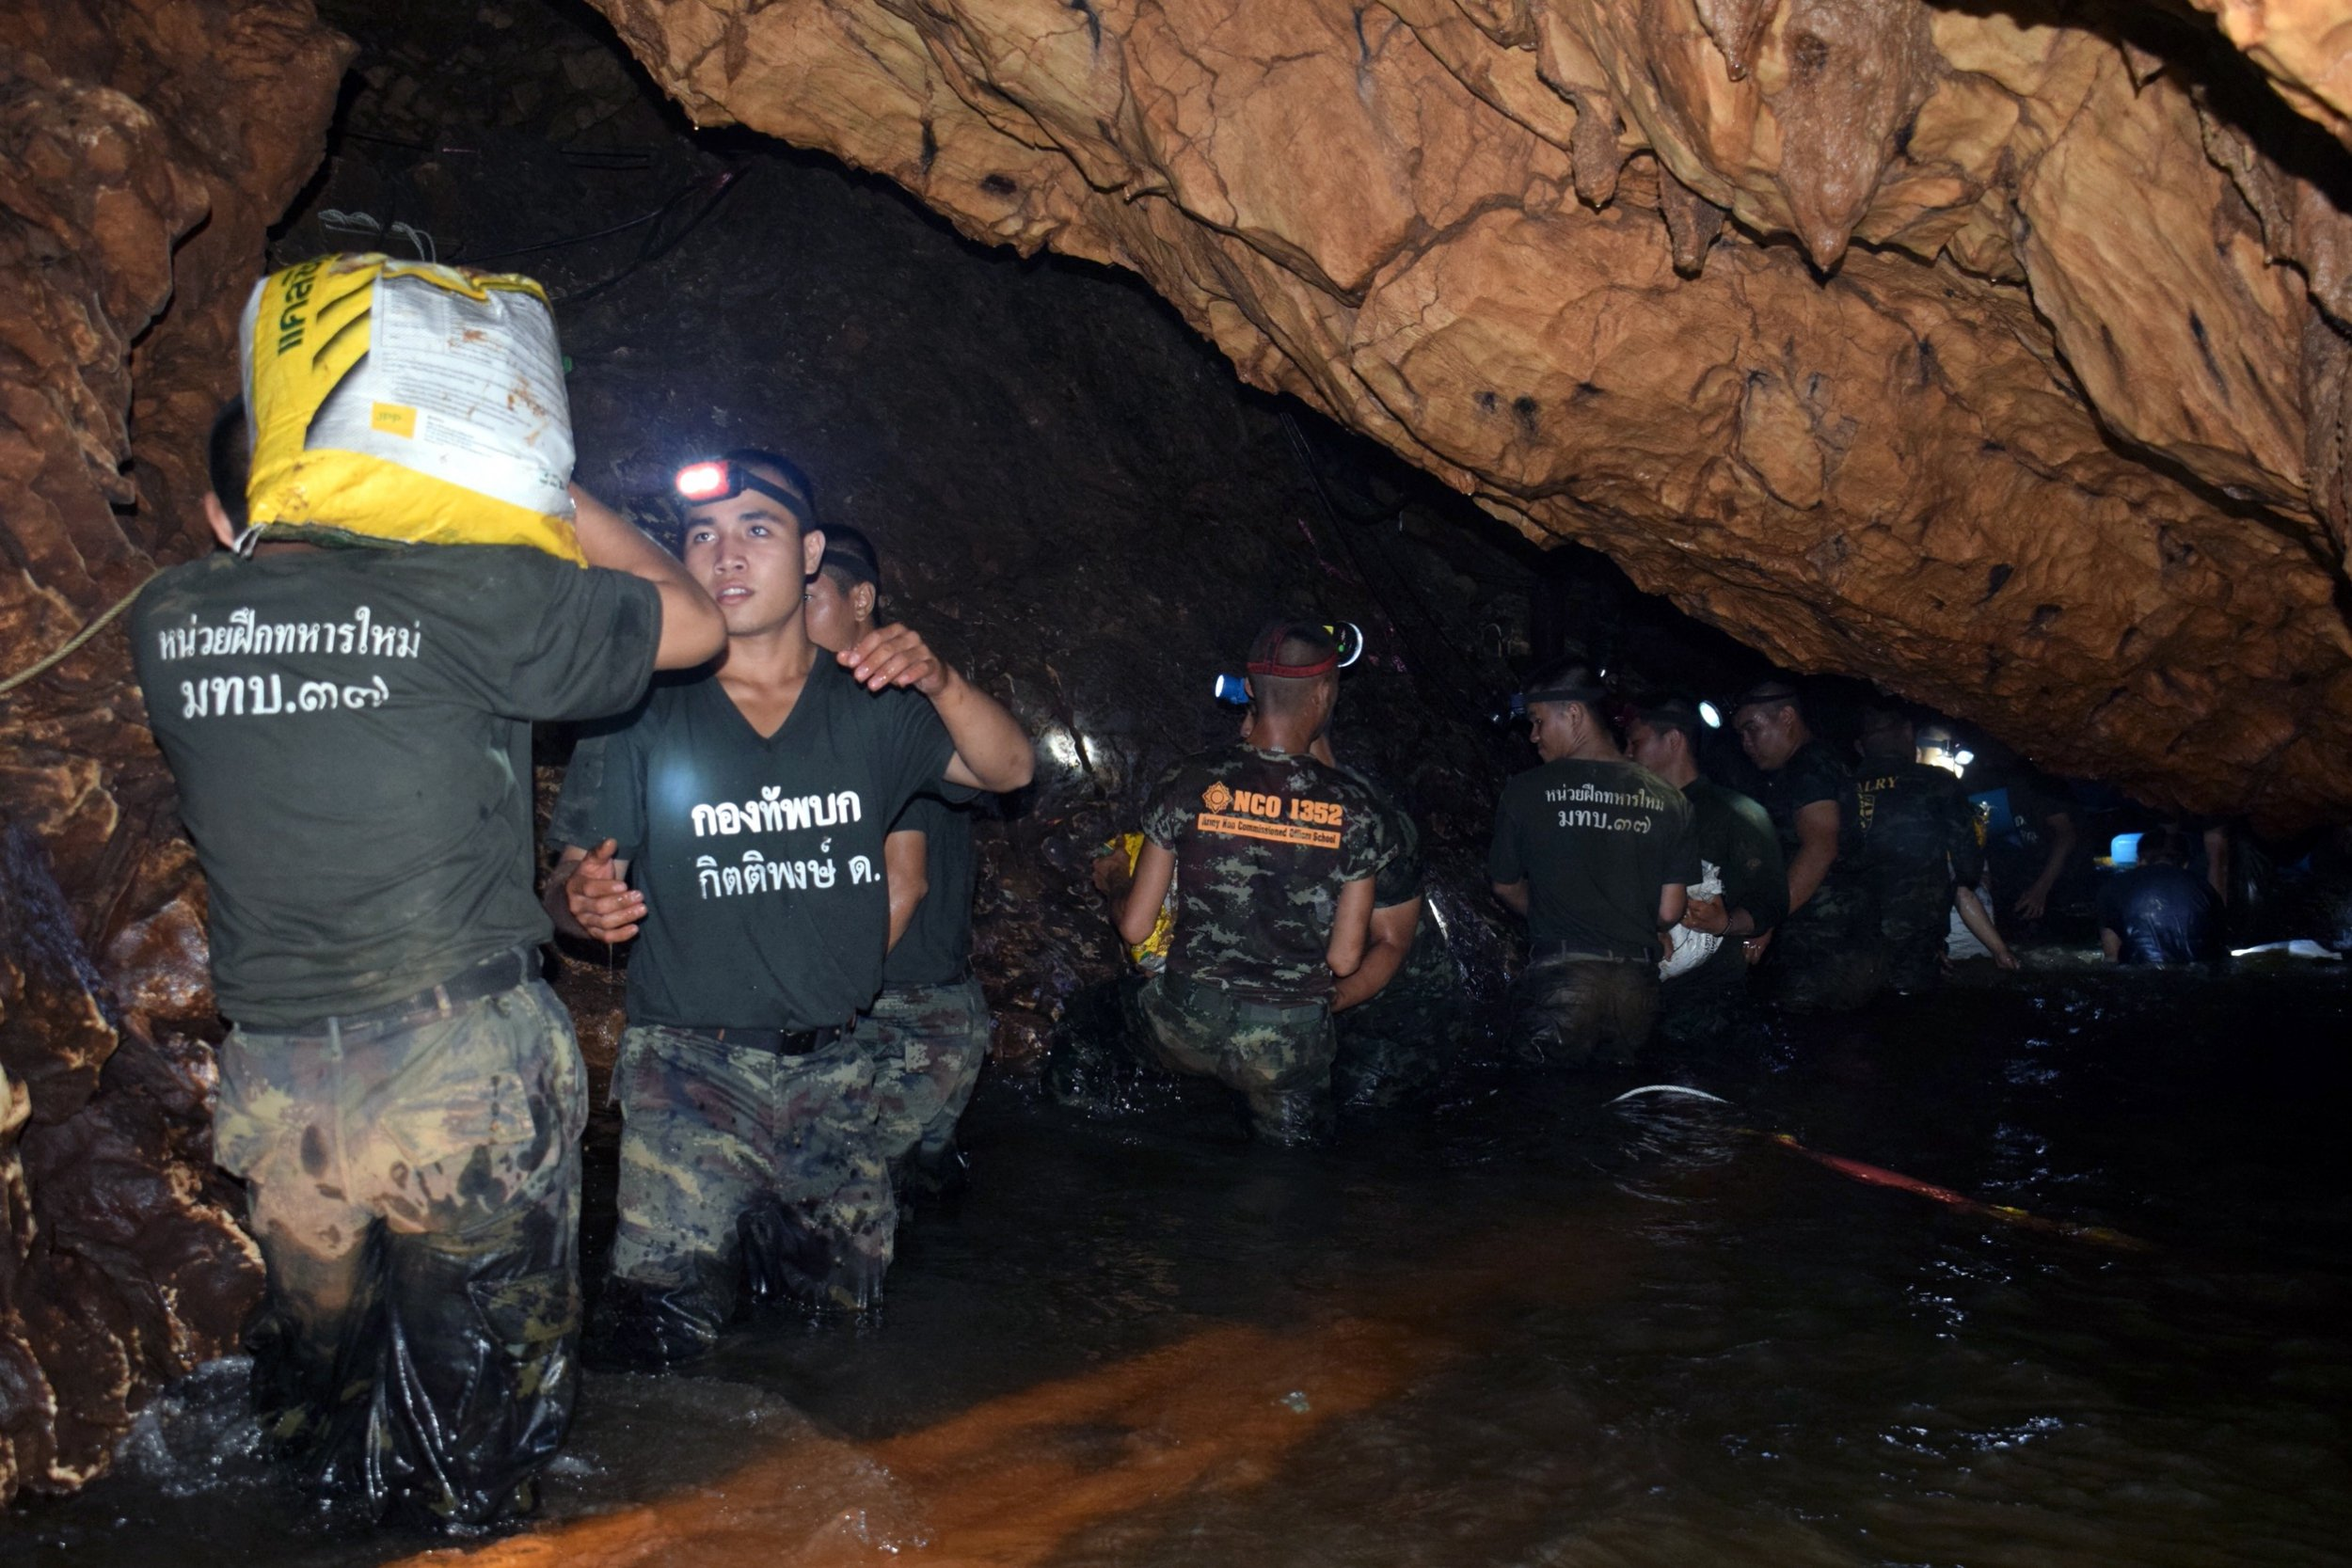 thailand news,thai football team,thai cave rescue,football team in cave